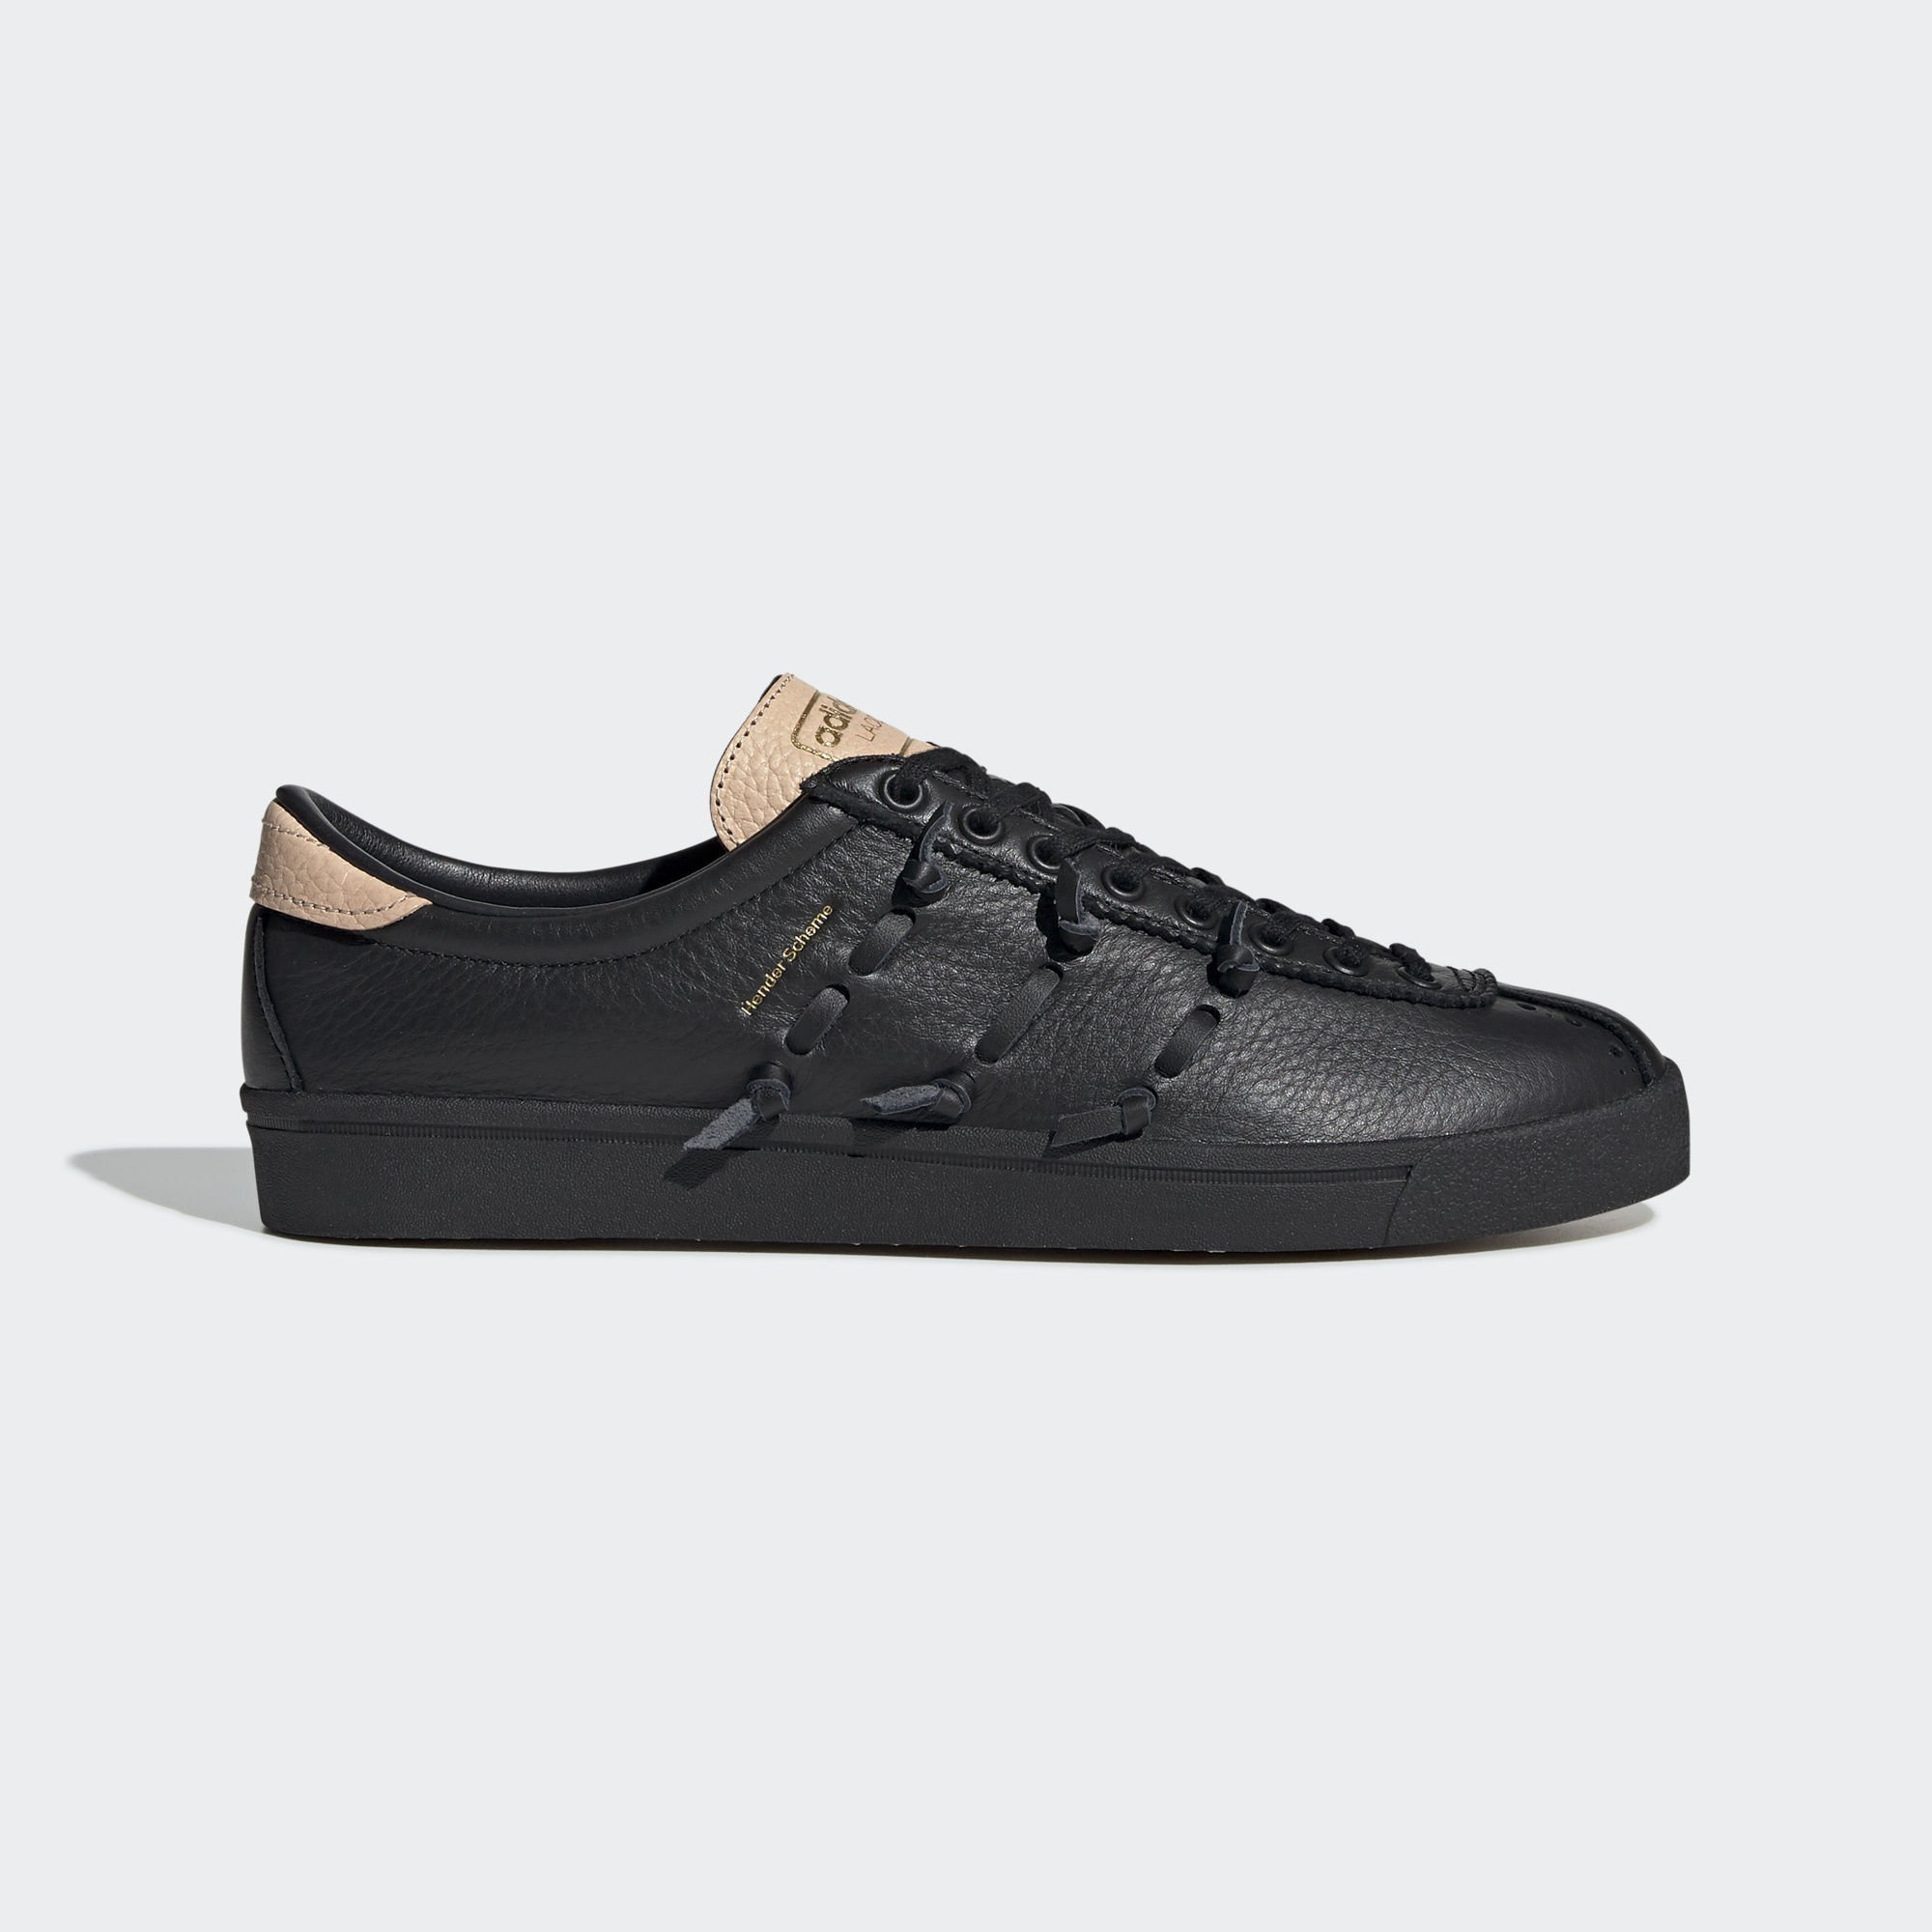 Adidas HS Lacombe Core Black / Supplier Colour / Gold Met. (EE6014)